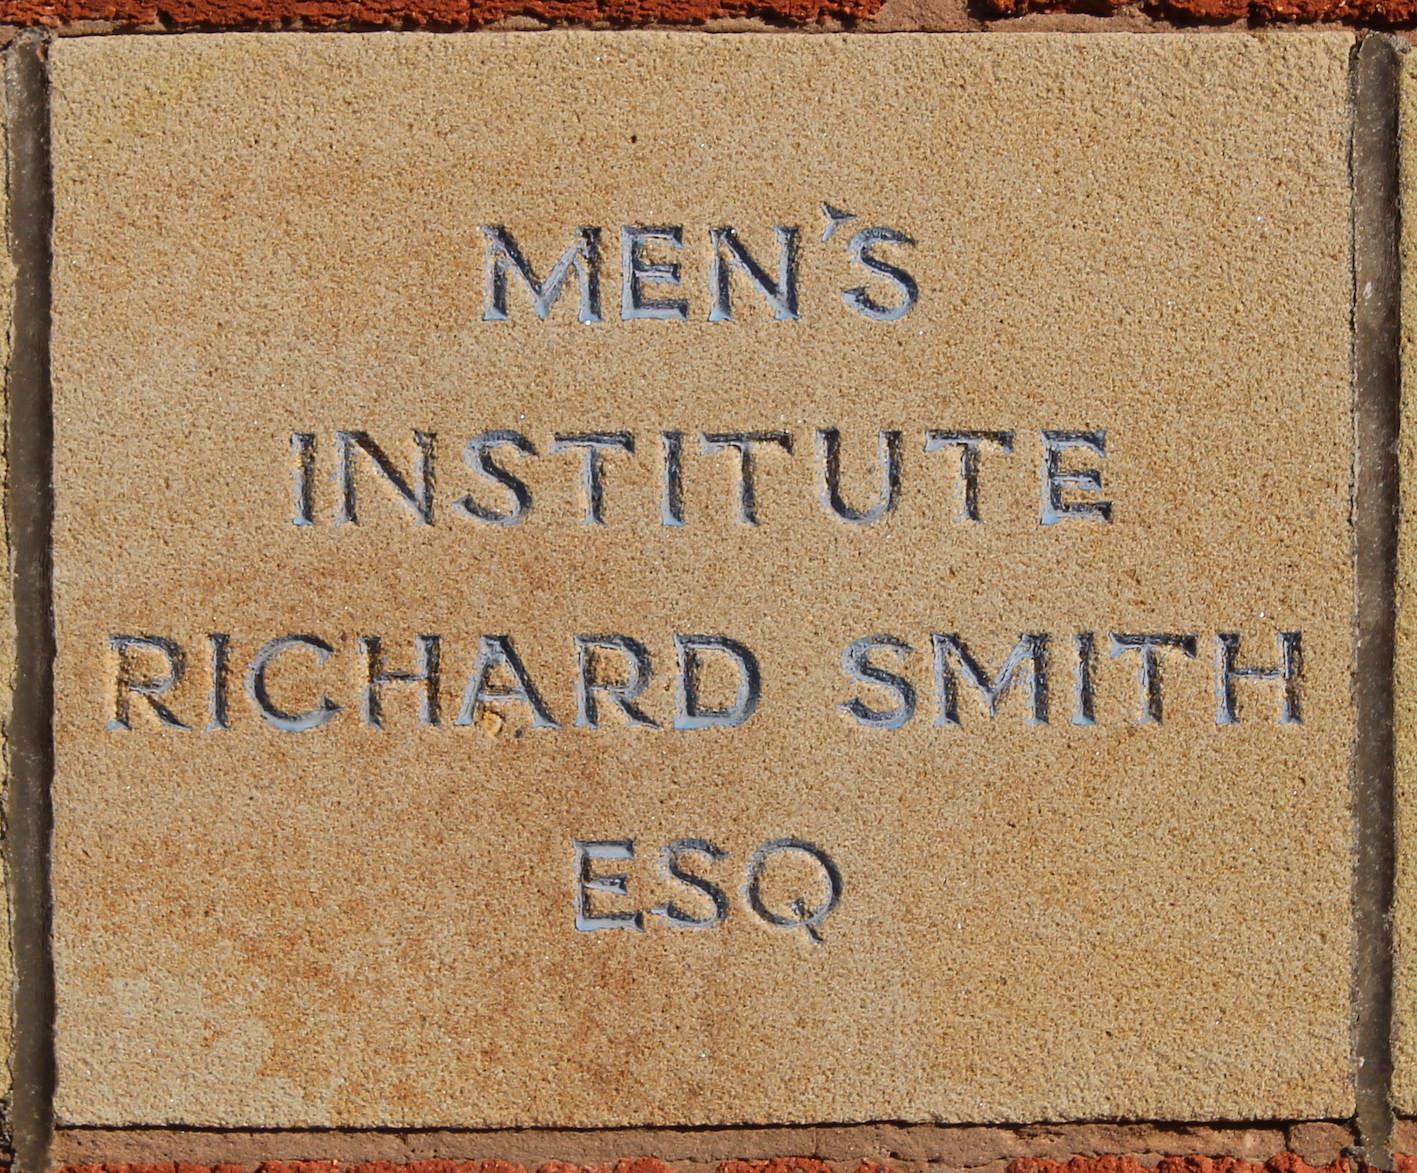 Memorial stone laid by Richard Smith